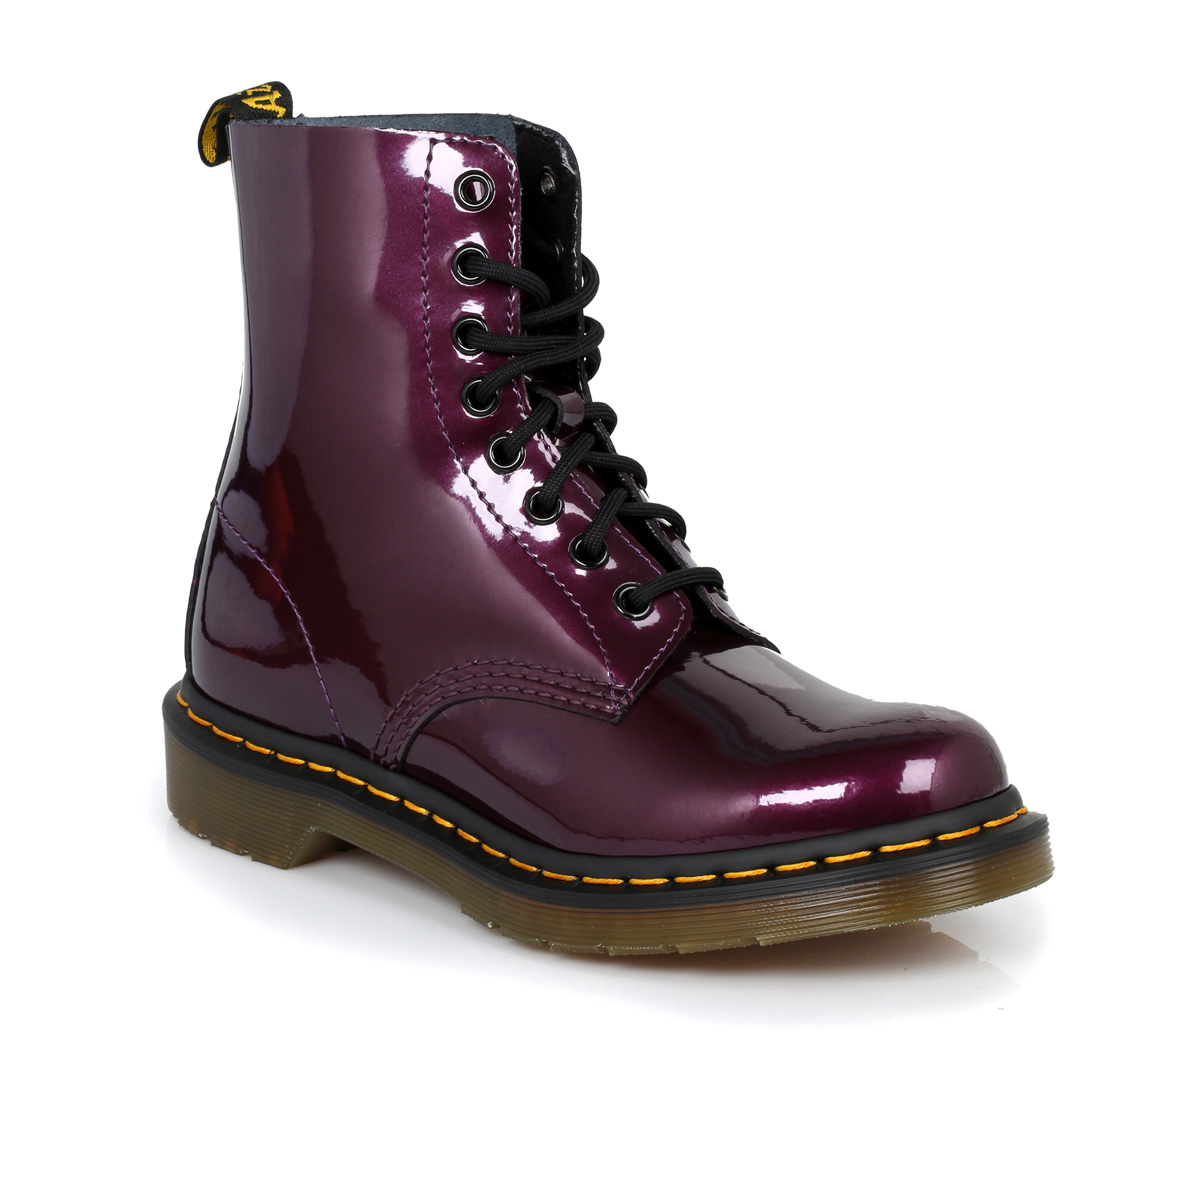 dr martens purple pascal leather womens boots sizes 3 9 ebay. Black Bedroom Furniture Sets. Home Design Ideas